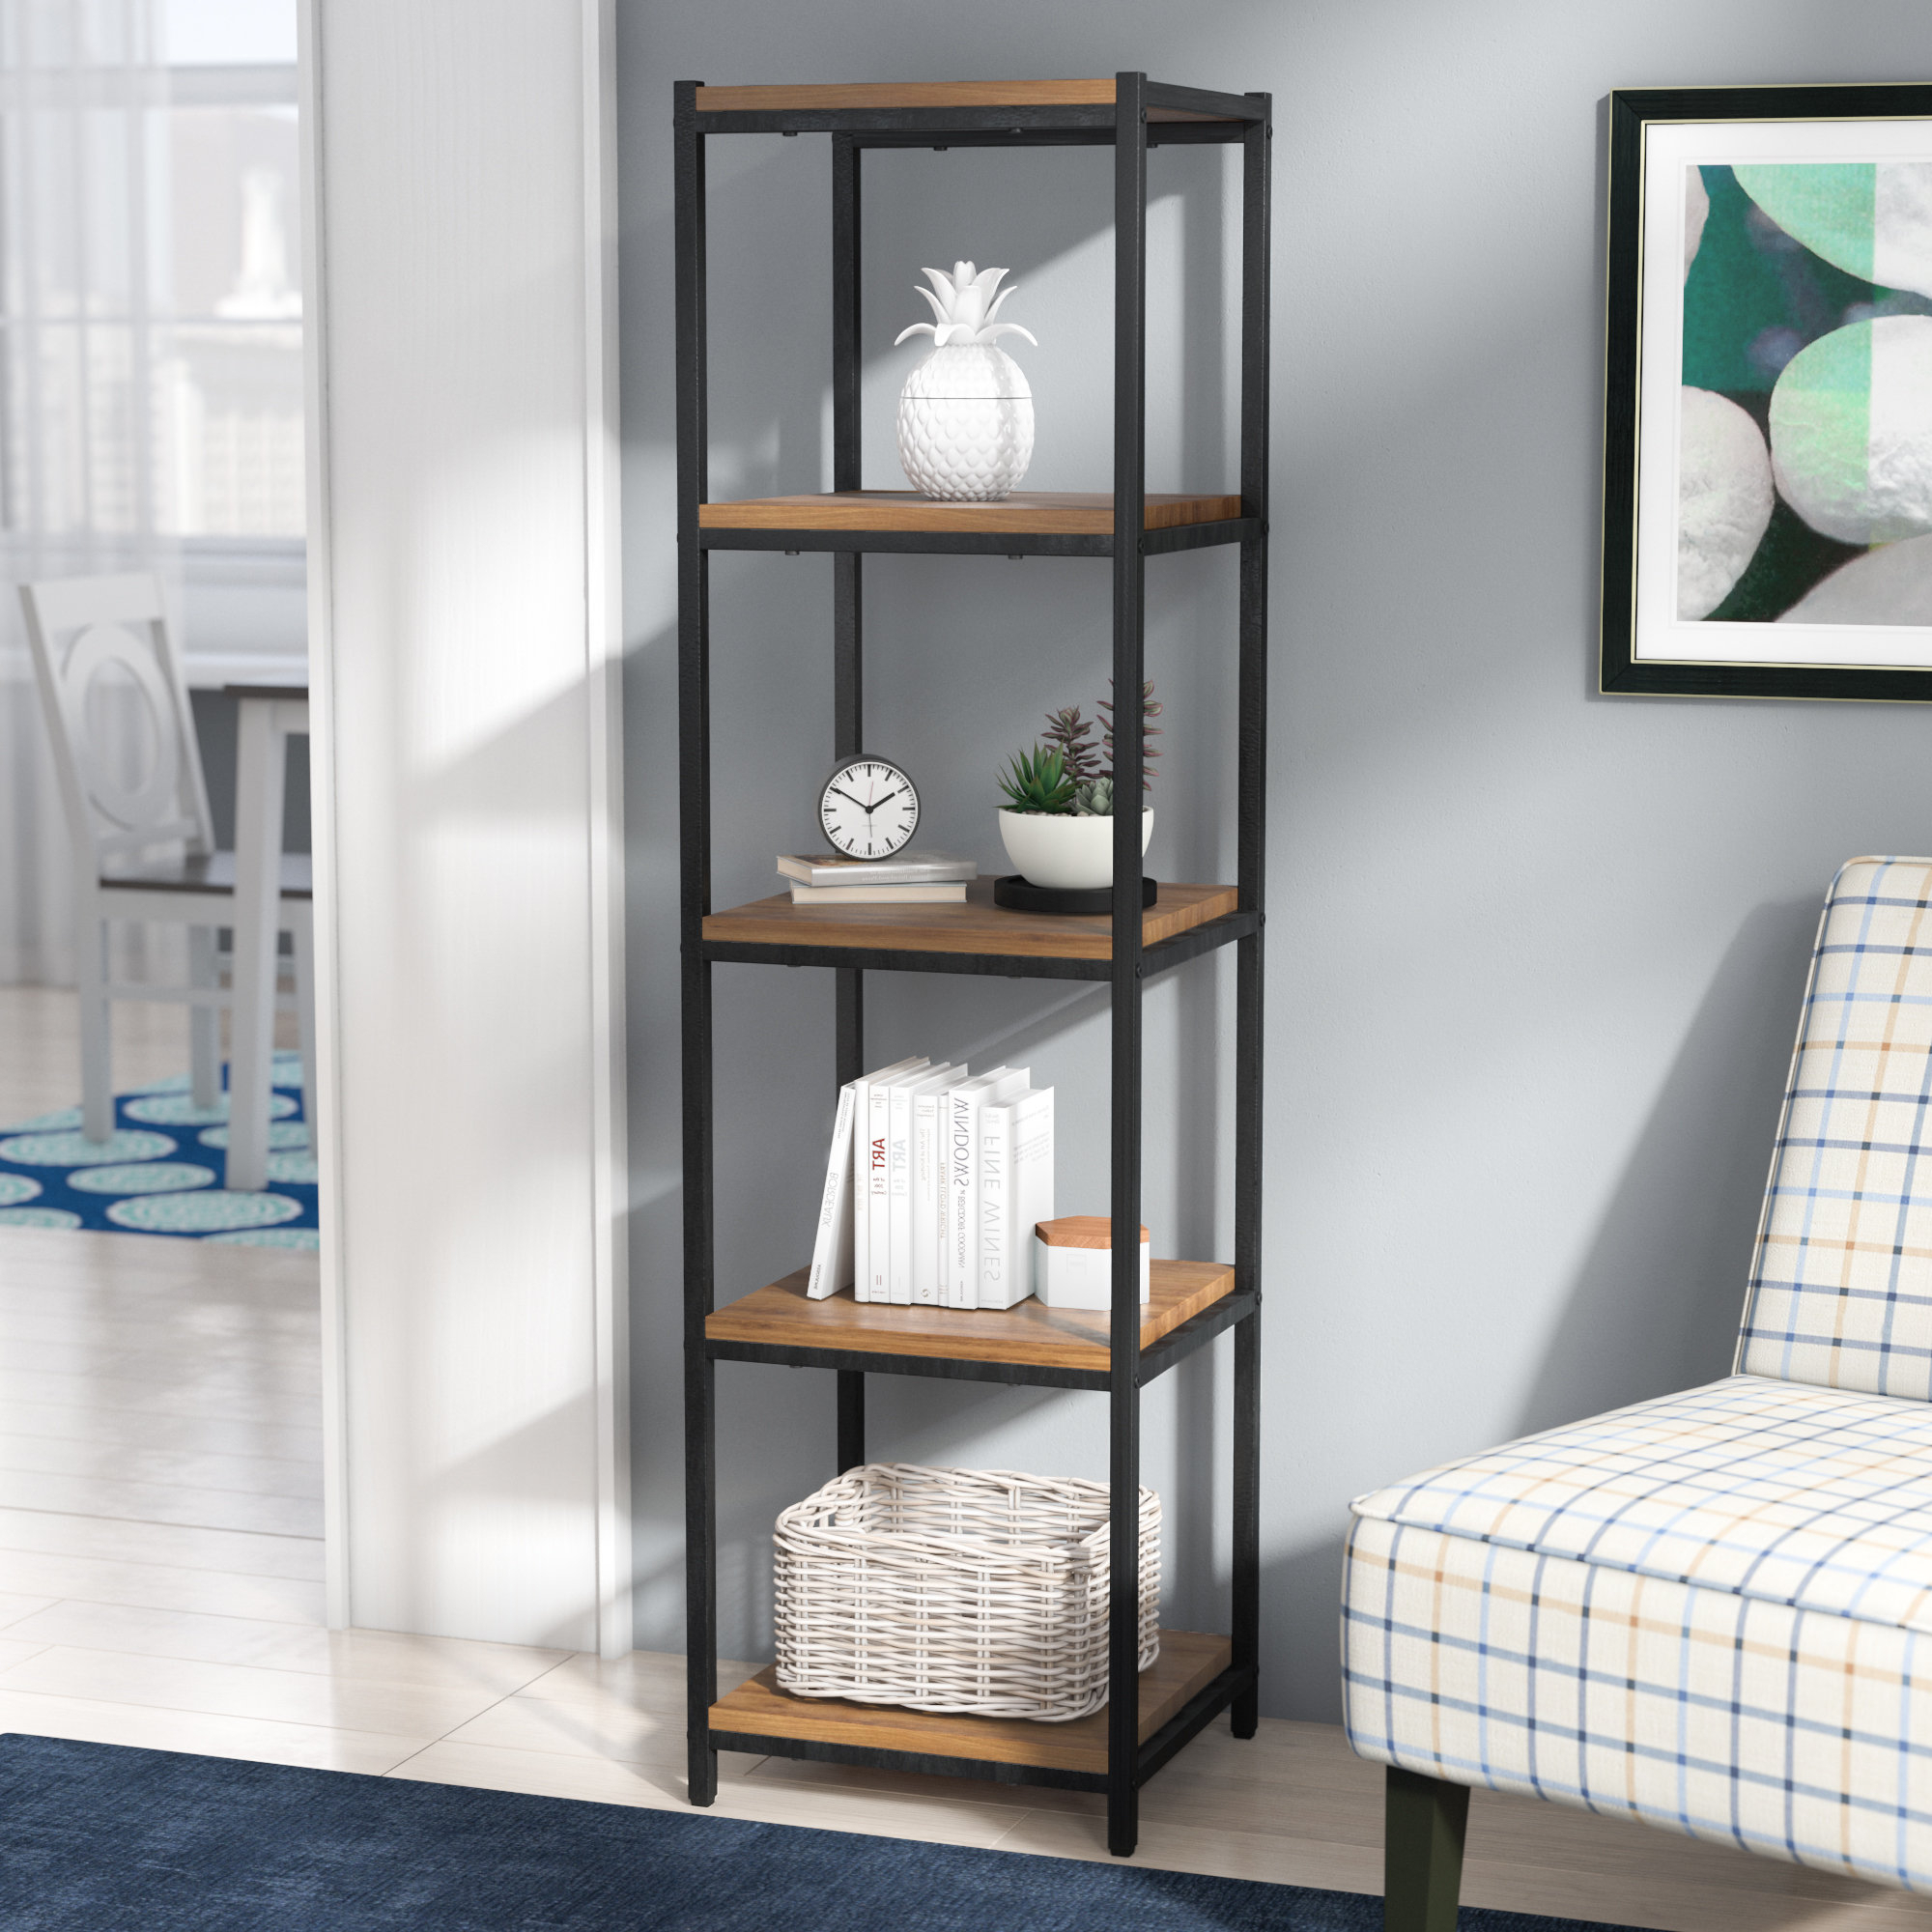 2020 Champney Modern Etagere Bookcases Within Champney Etagere Bookcase (Gallery 15 of 20)